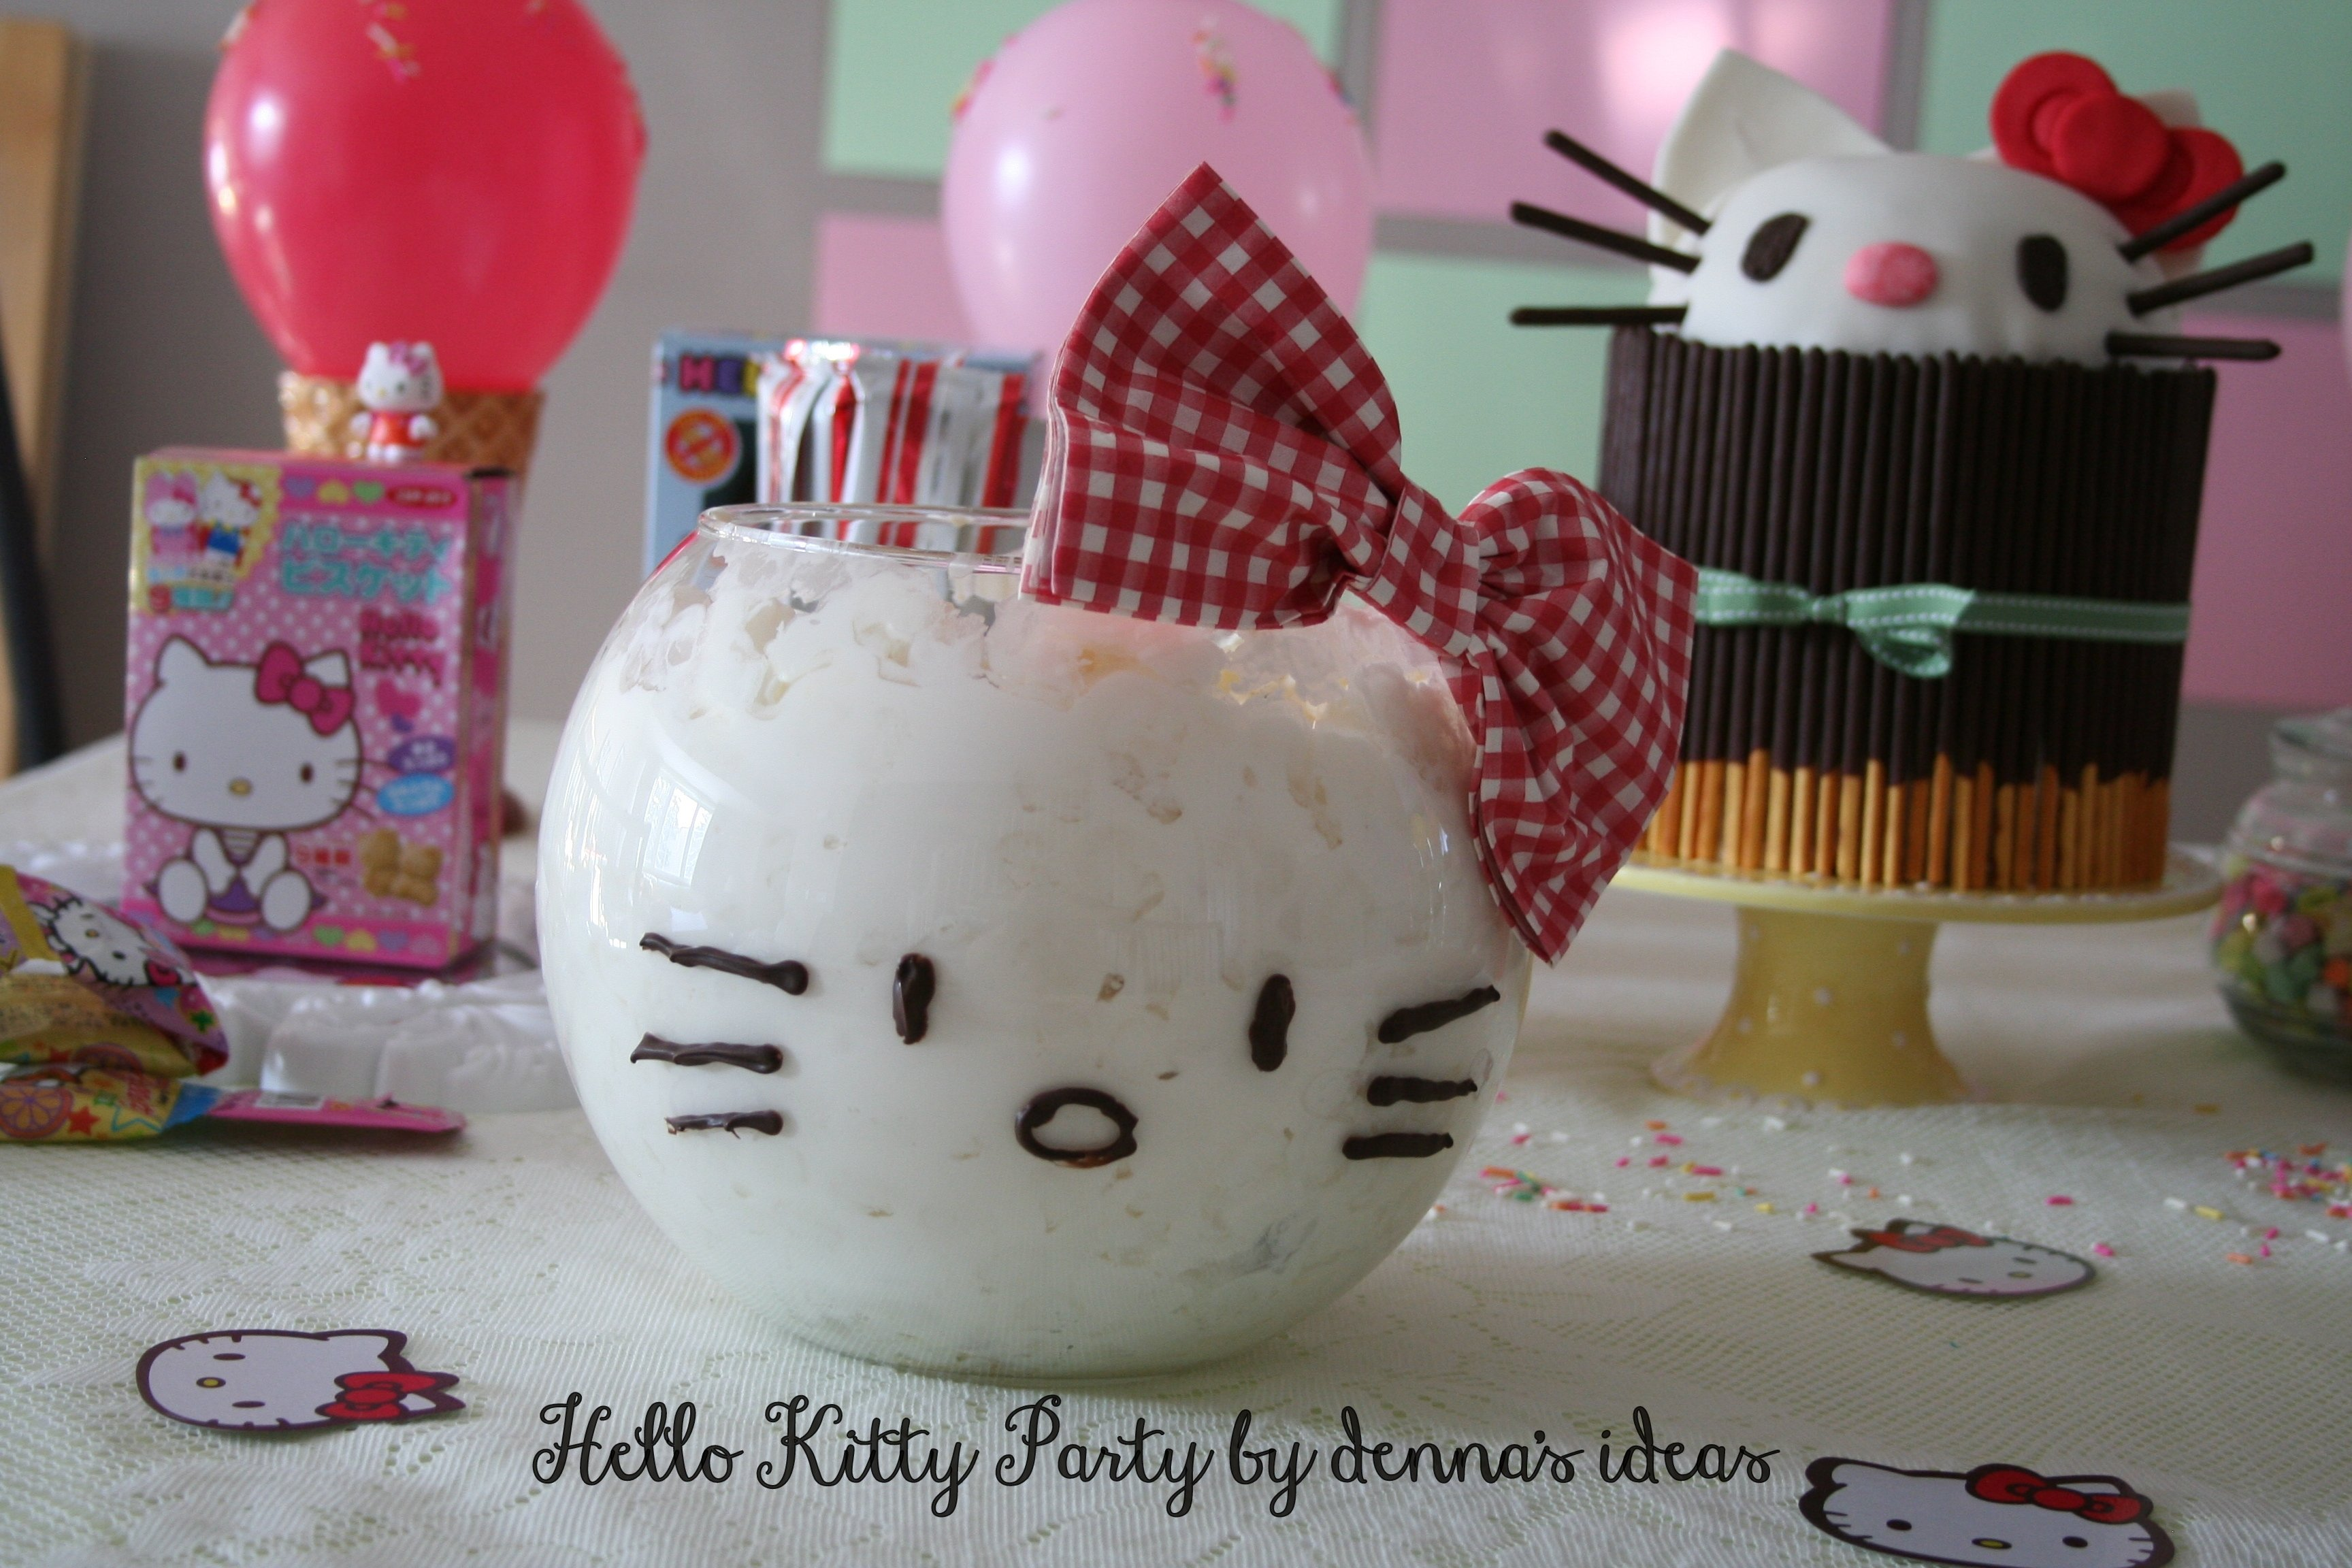 10 Attractive Hello Kitty Party Food Ideas fruit salad bowl ideas dennas ideas